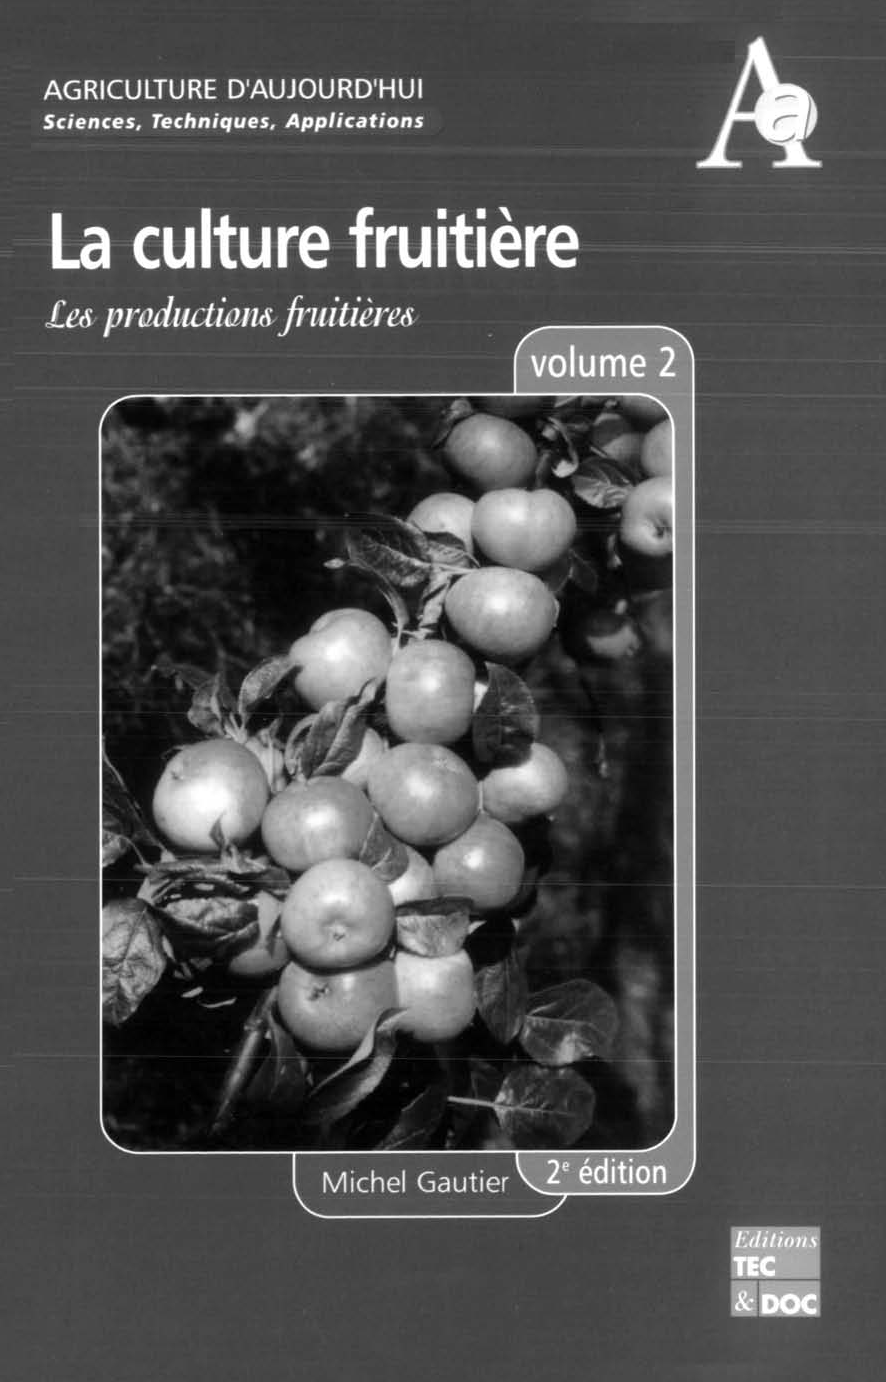 La culture fruitière Volume 2: Les productions fruitières